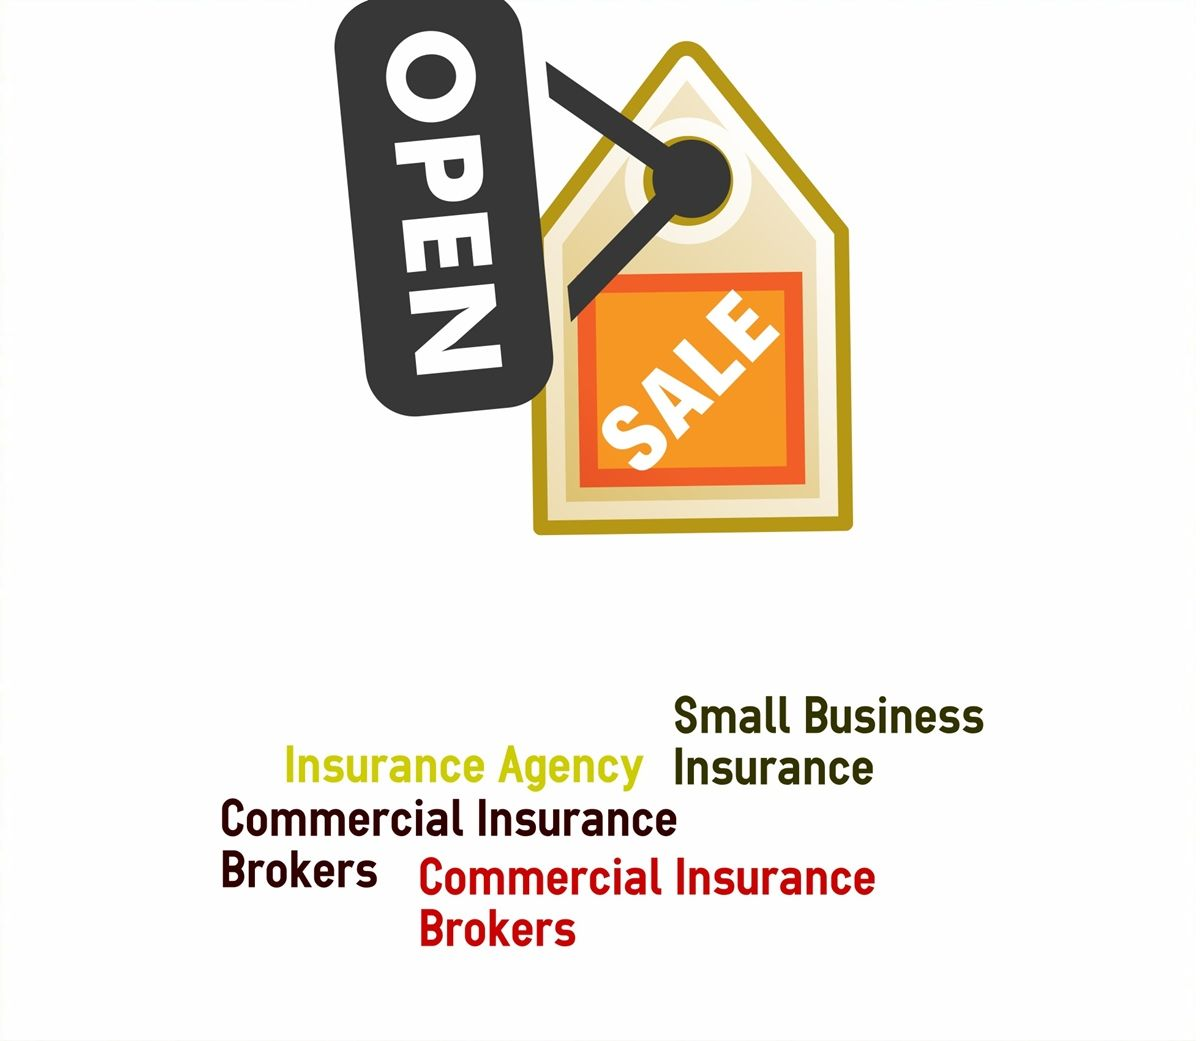 Small Business Insurance Image Credit Http Www Dfmurphy Com